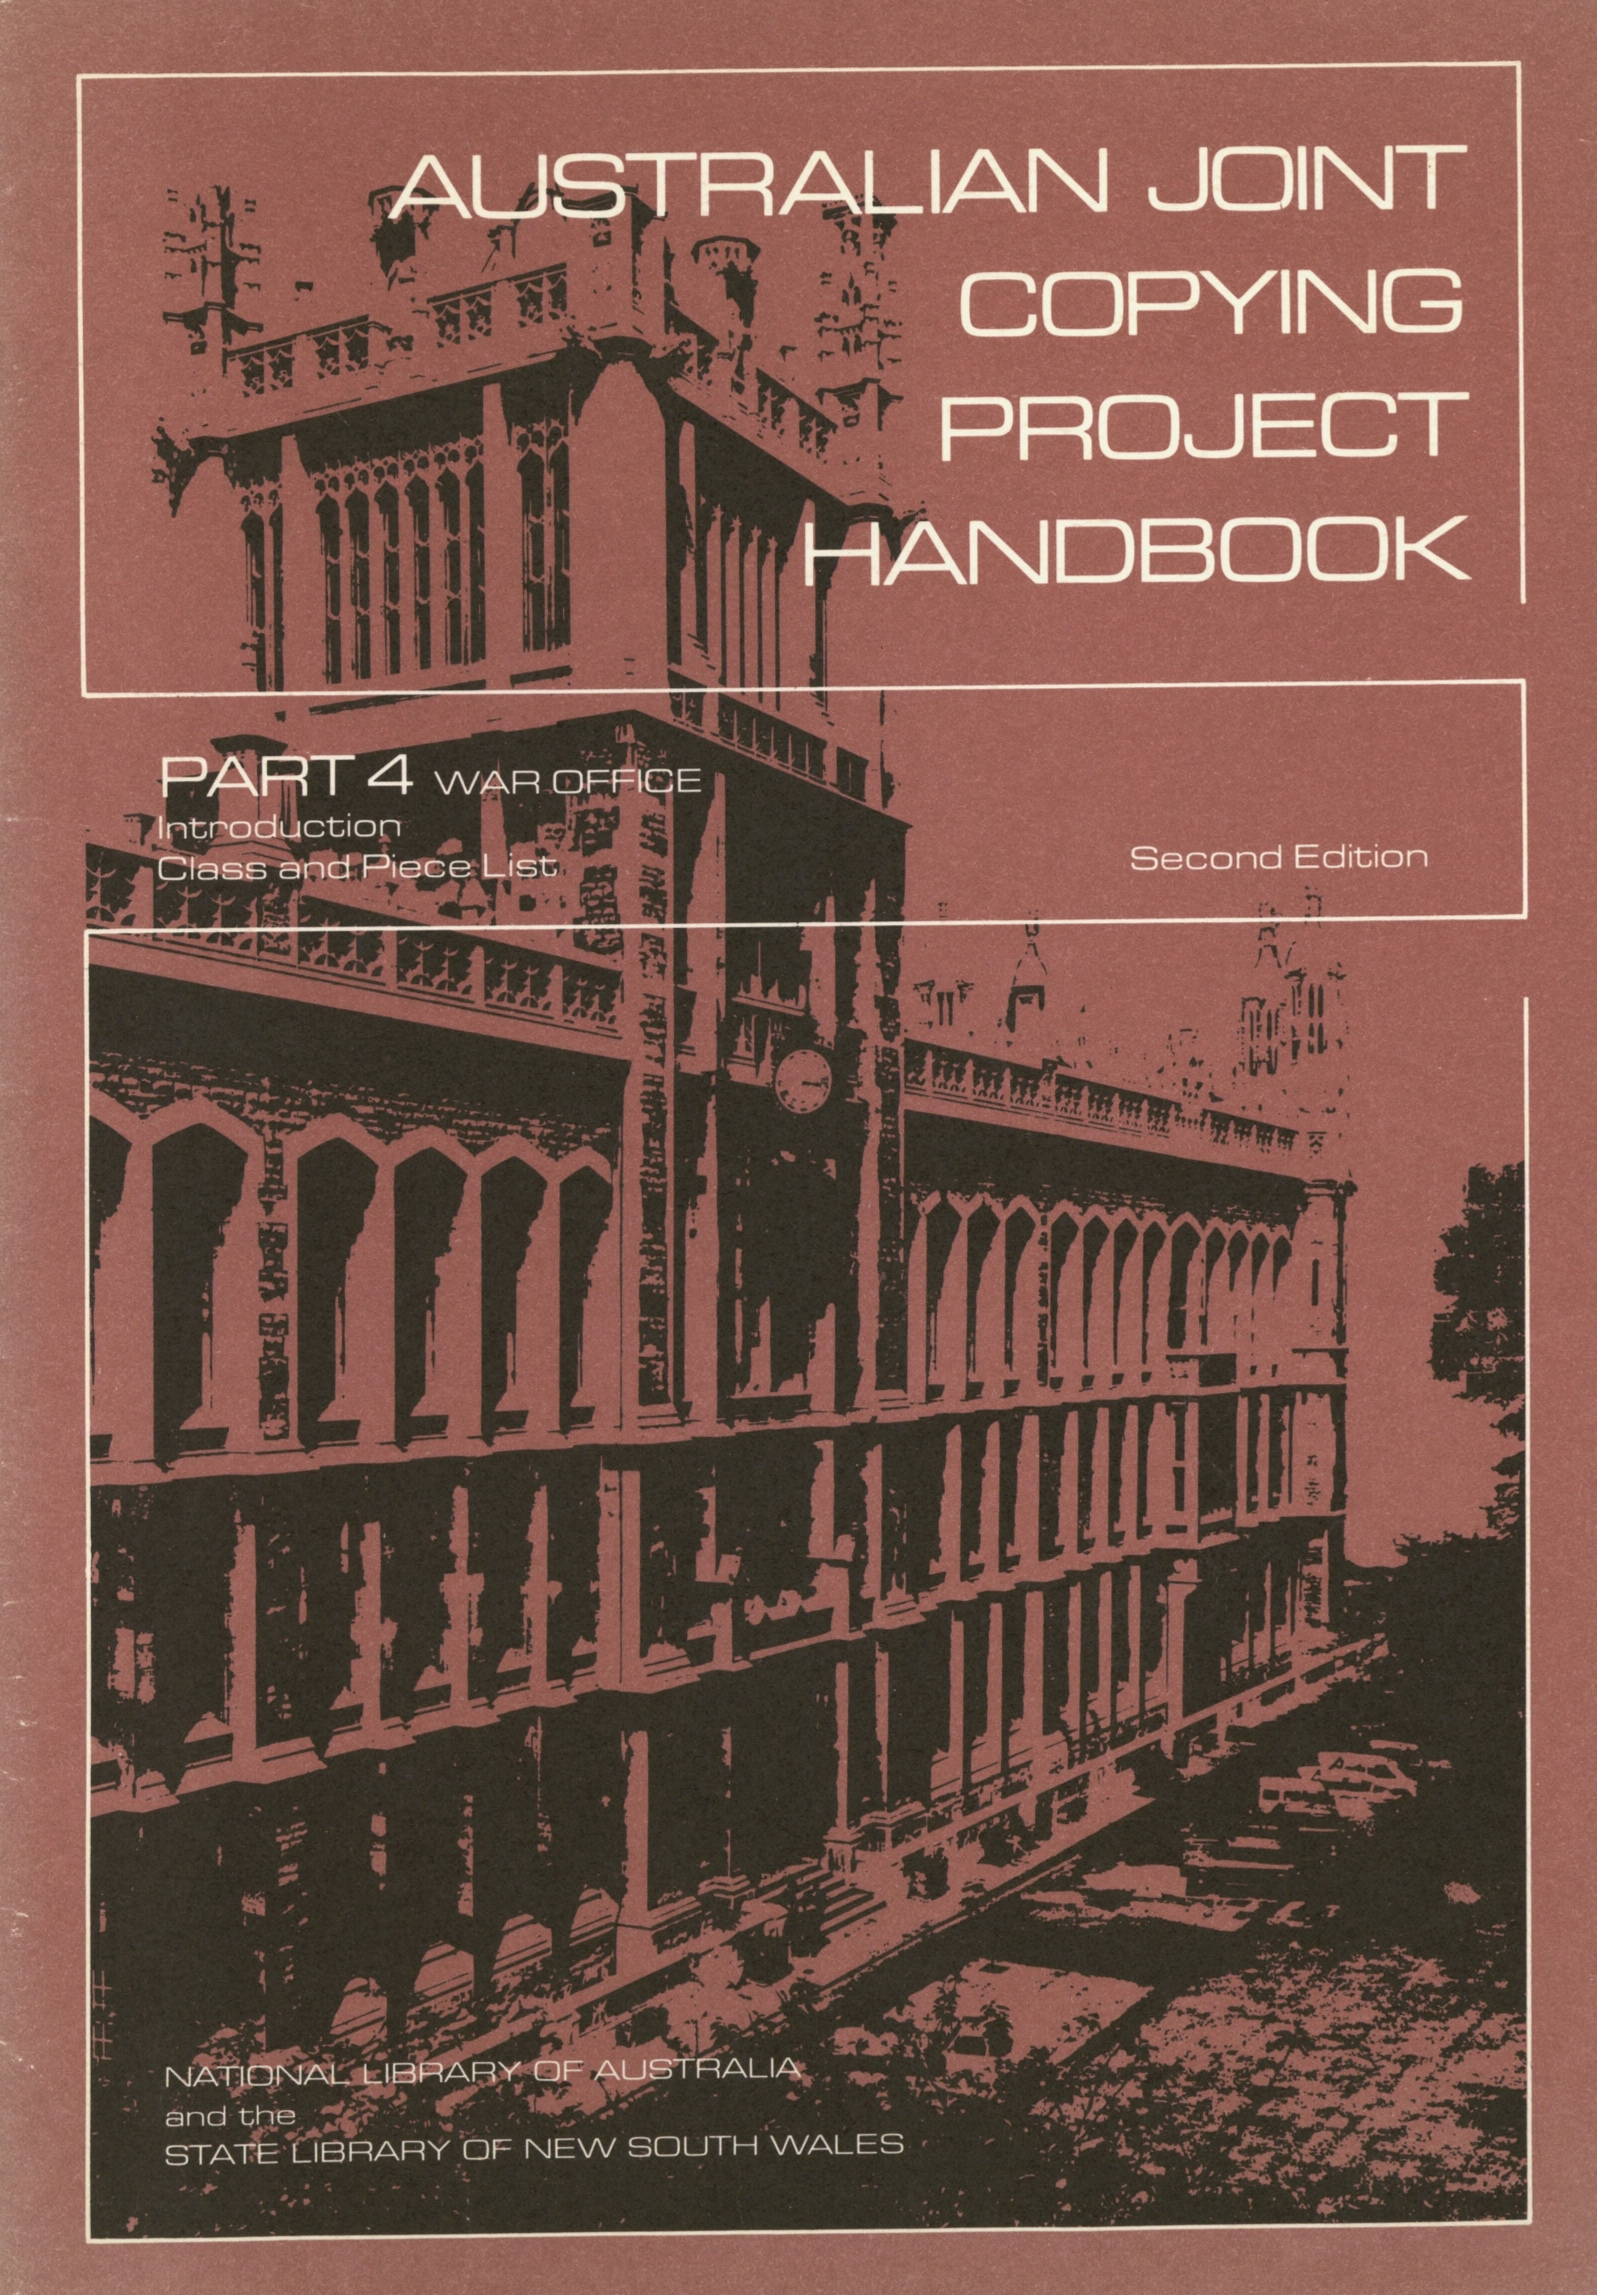 Australian Joint Copying Project handbook. Part 4. War Office. Introduction, class and piece list / National Library of Australia and the State Library of New South Wales